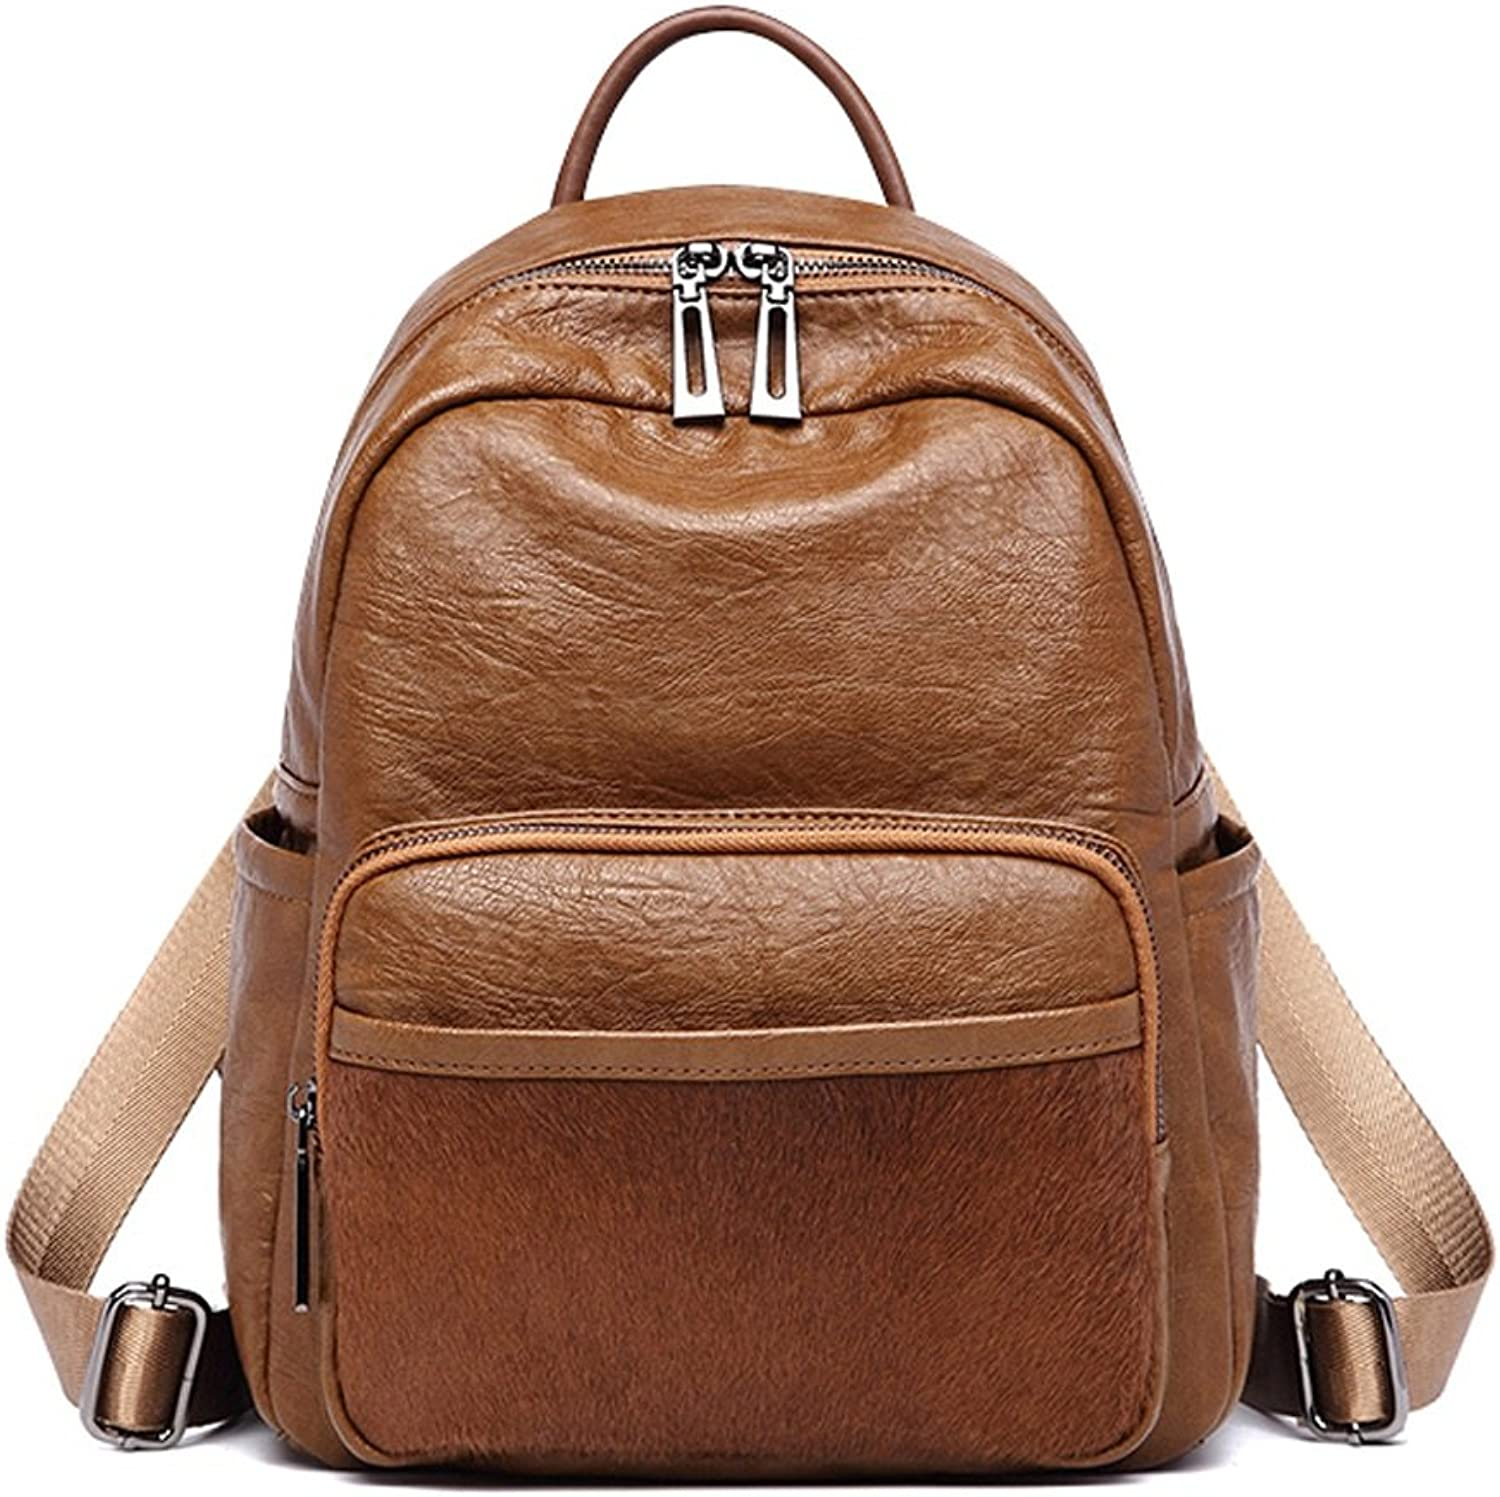 CQ New Port Style Pack Fashion Bag Casual Bag Fashion Leather Bag Antique Backpack (color   Brown, Size   25  13  33cm)